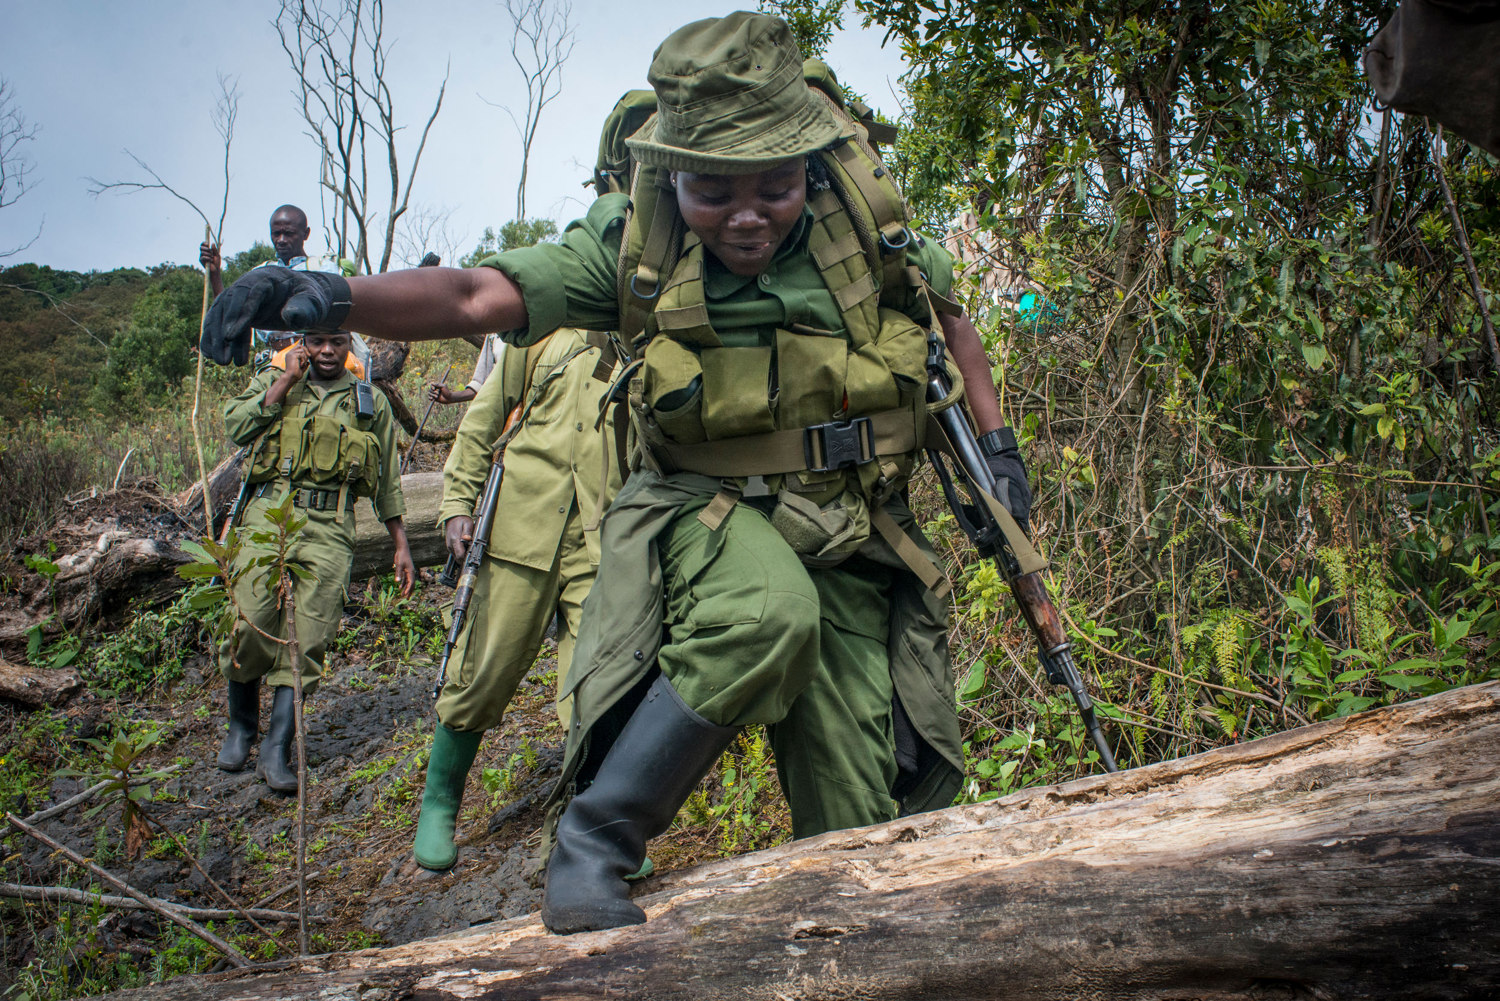 Solange on the patrol down from the volcano.For the first time, women have taken up the most dangerous job in wildlife, becoming para-military rangers at the Virunga National Park in DR Congo.